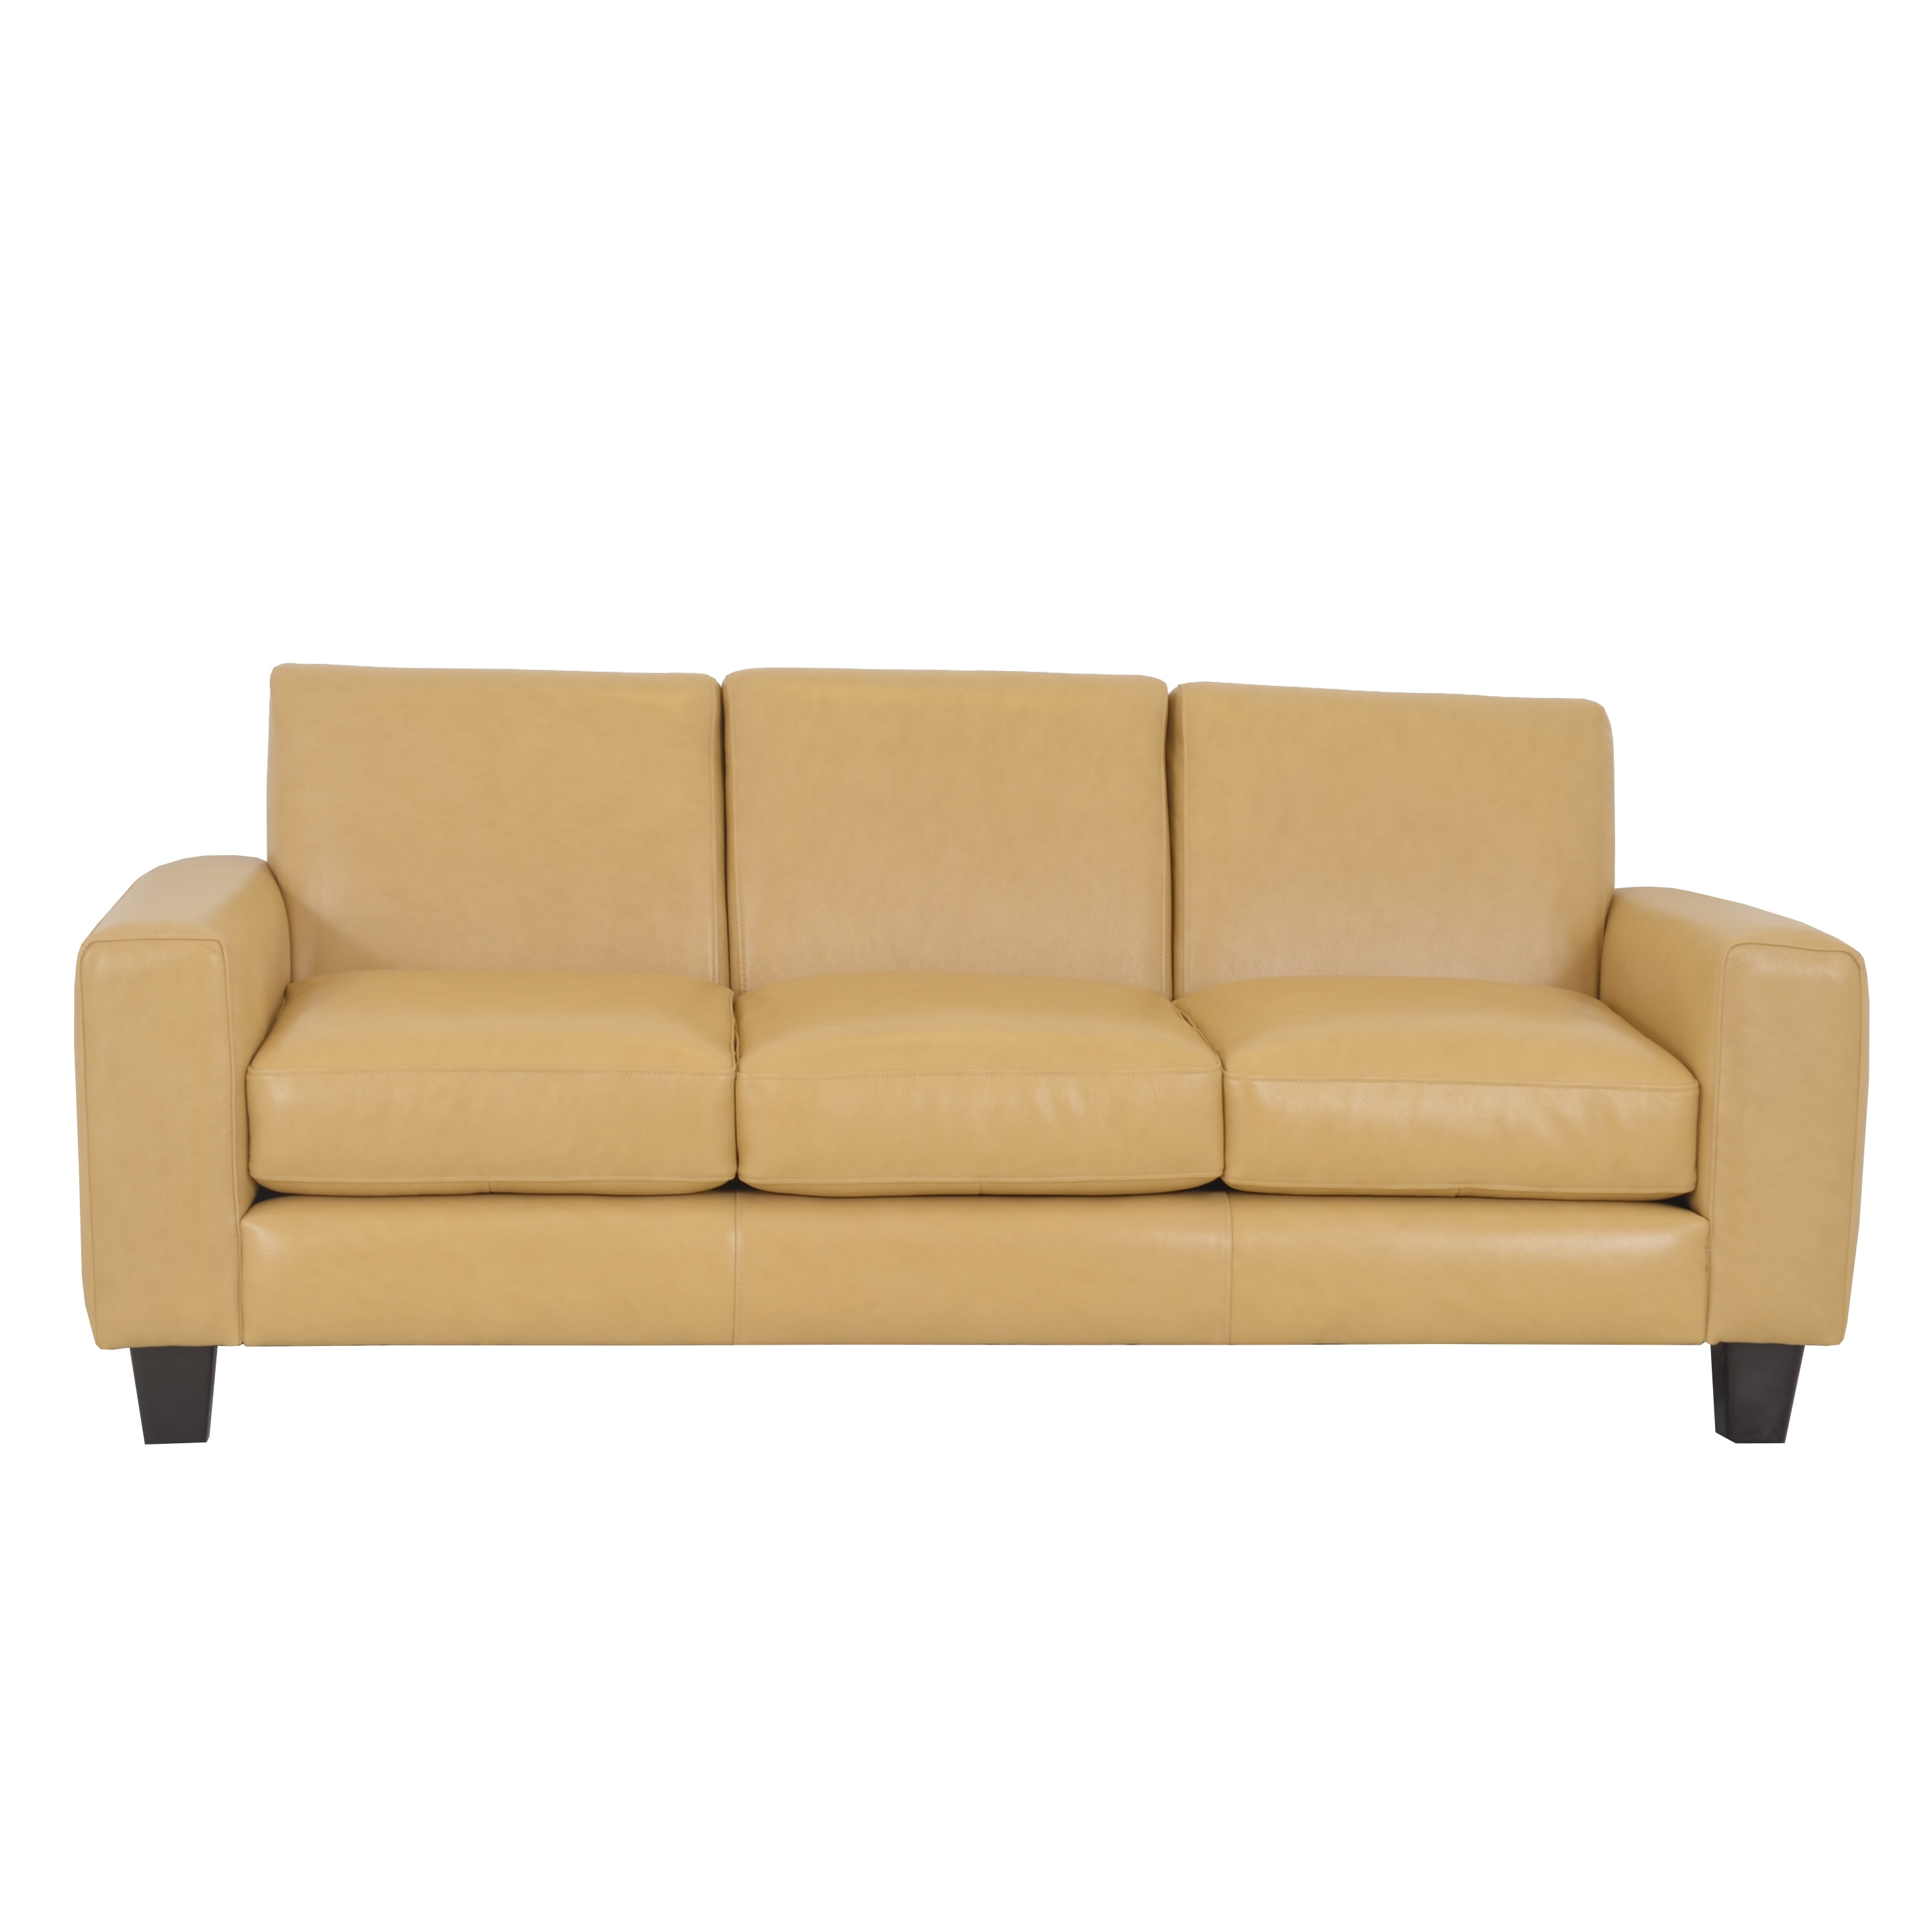 Shop Made To Order Columbia Genuine Top Grain Leather Sofa On Sale